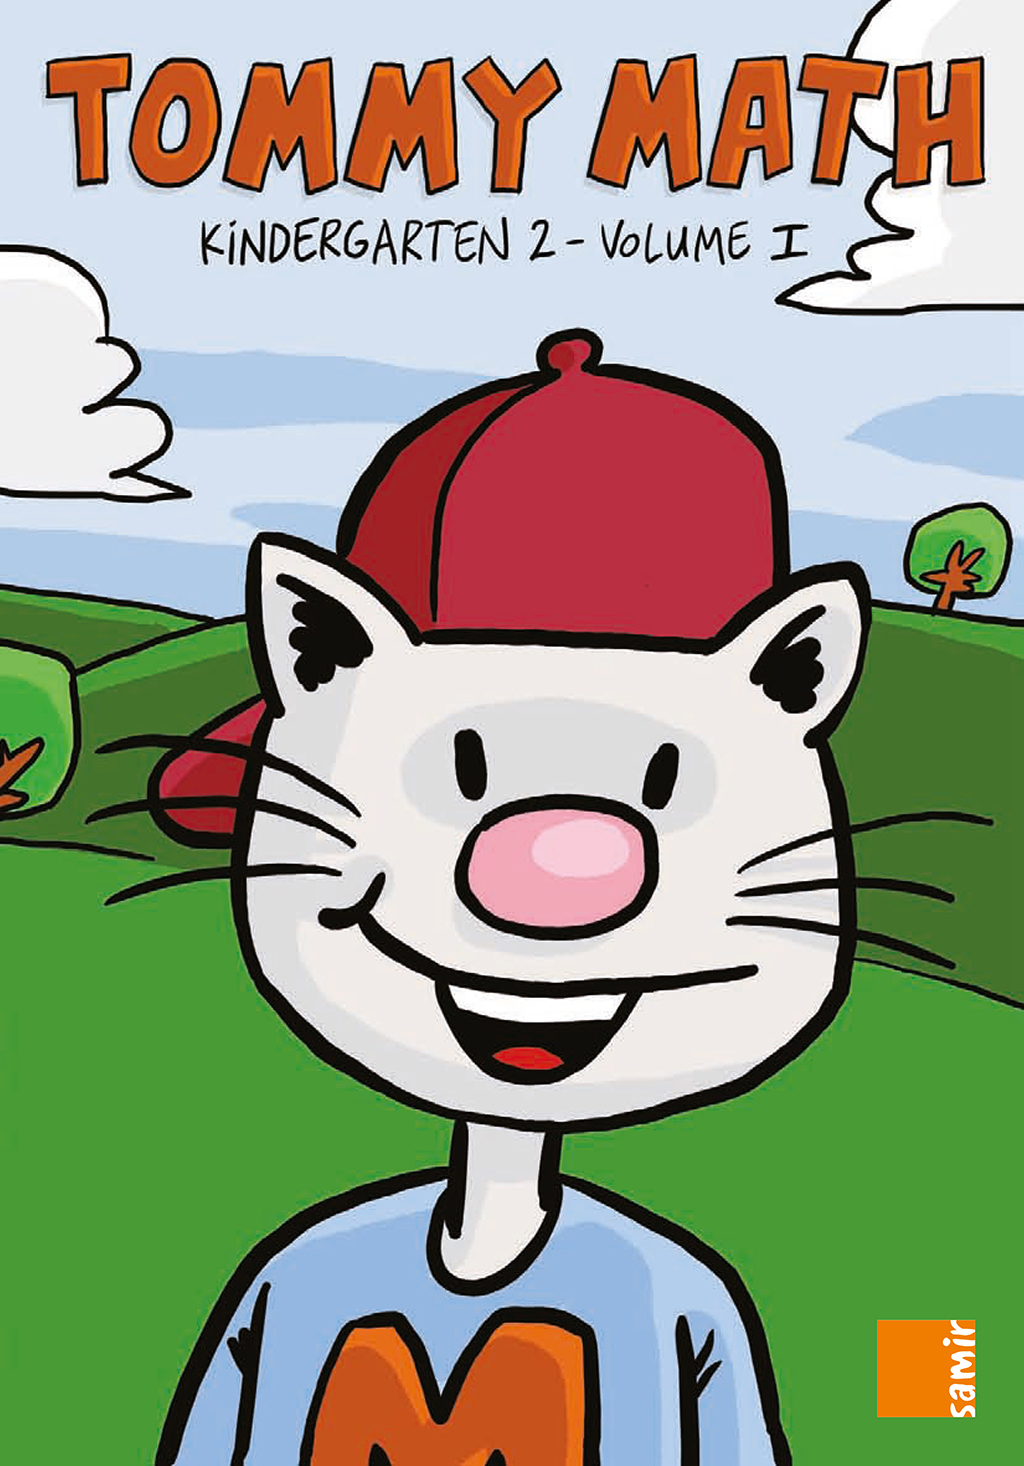 Samir Éditeur - Workbook KG2 Volume 1 - Couverture